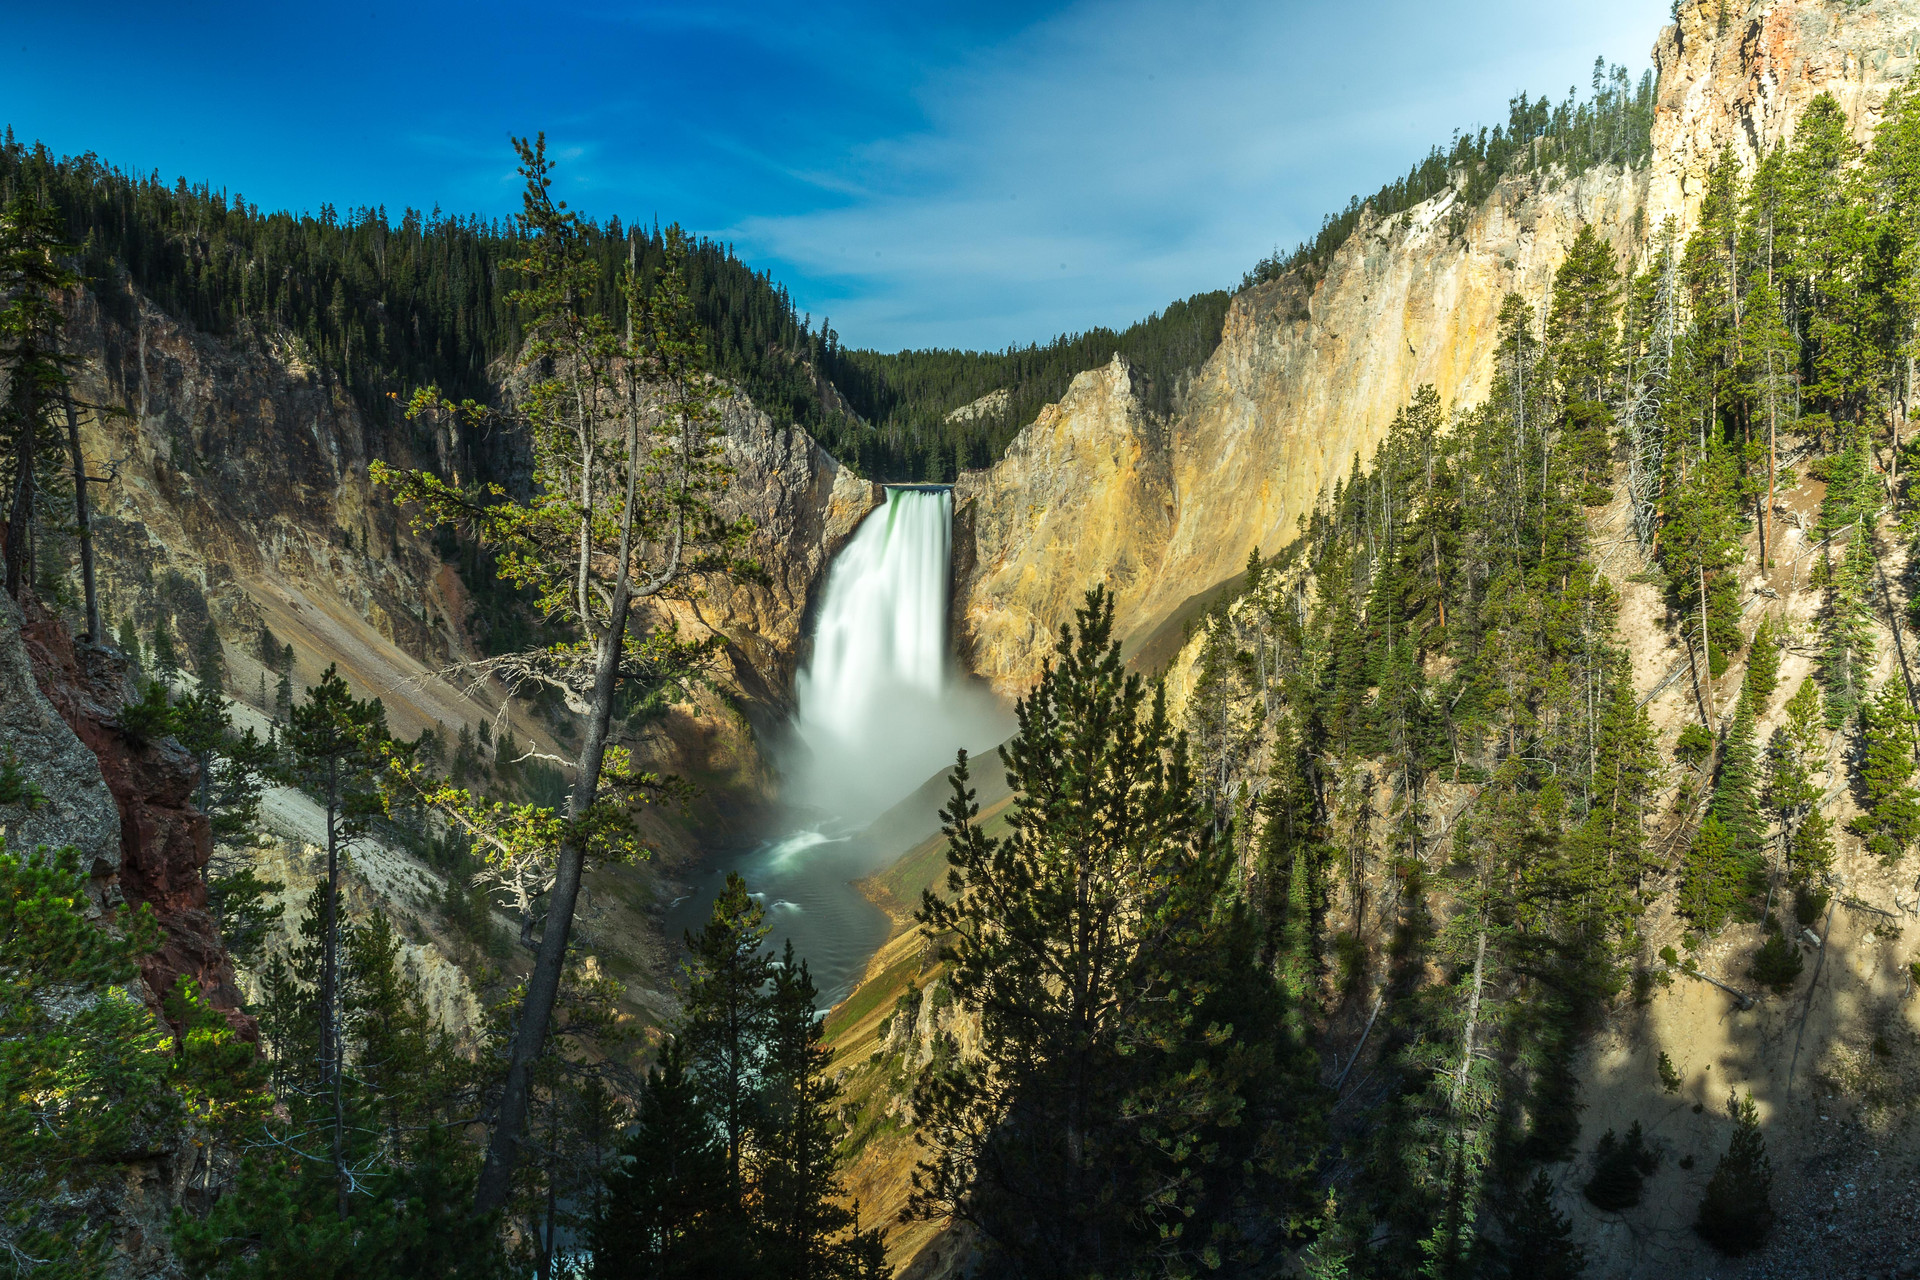 Calgary Landscape Photographer - Commercial prints - Yellowstone National Park - Waterfall Landscape photography